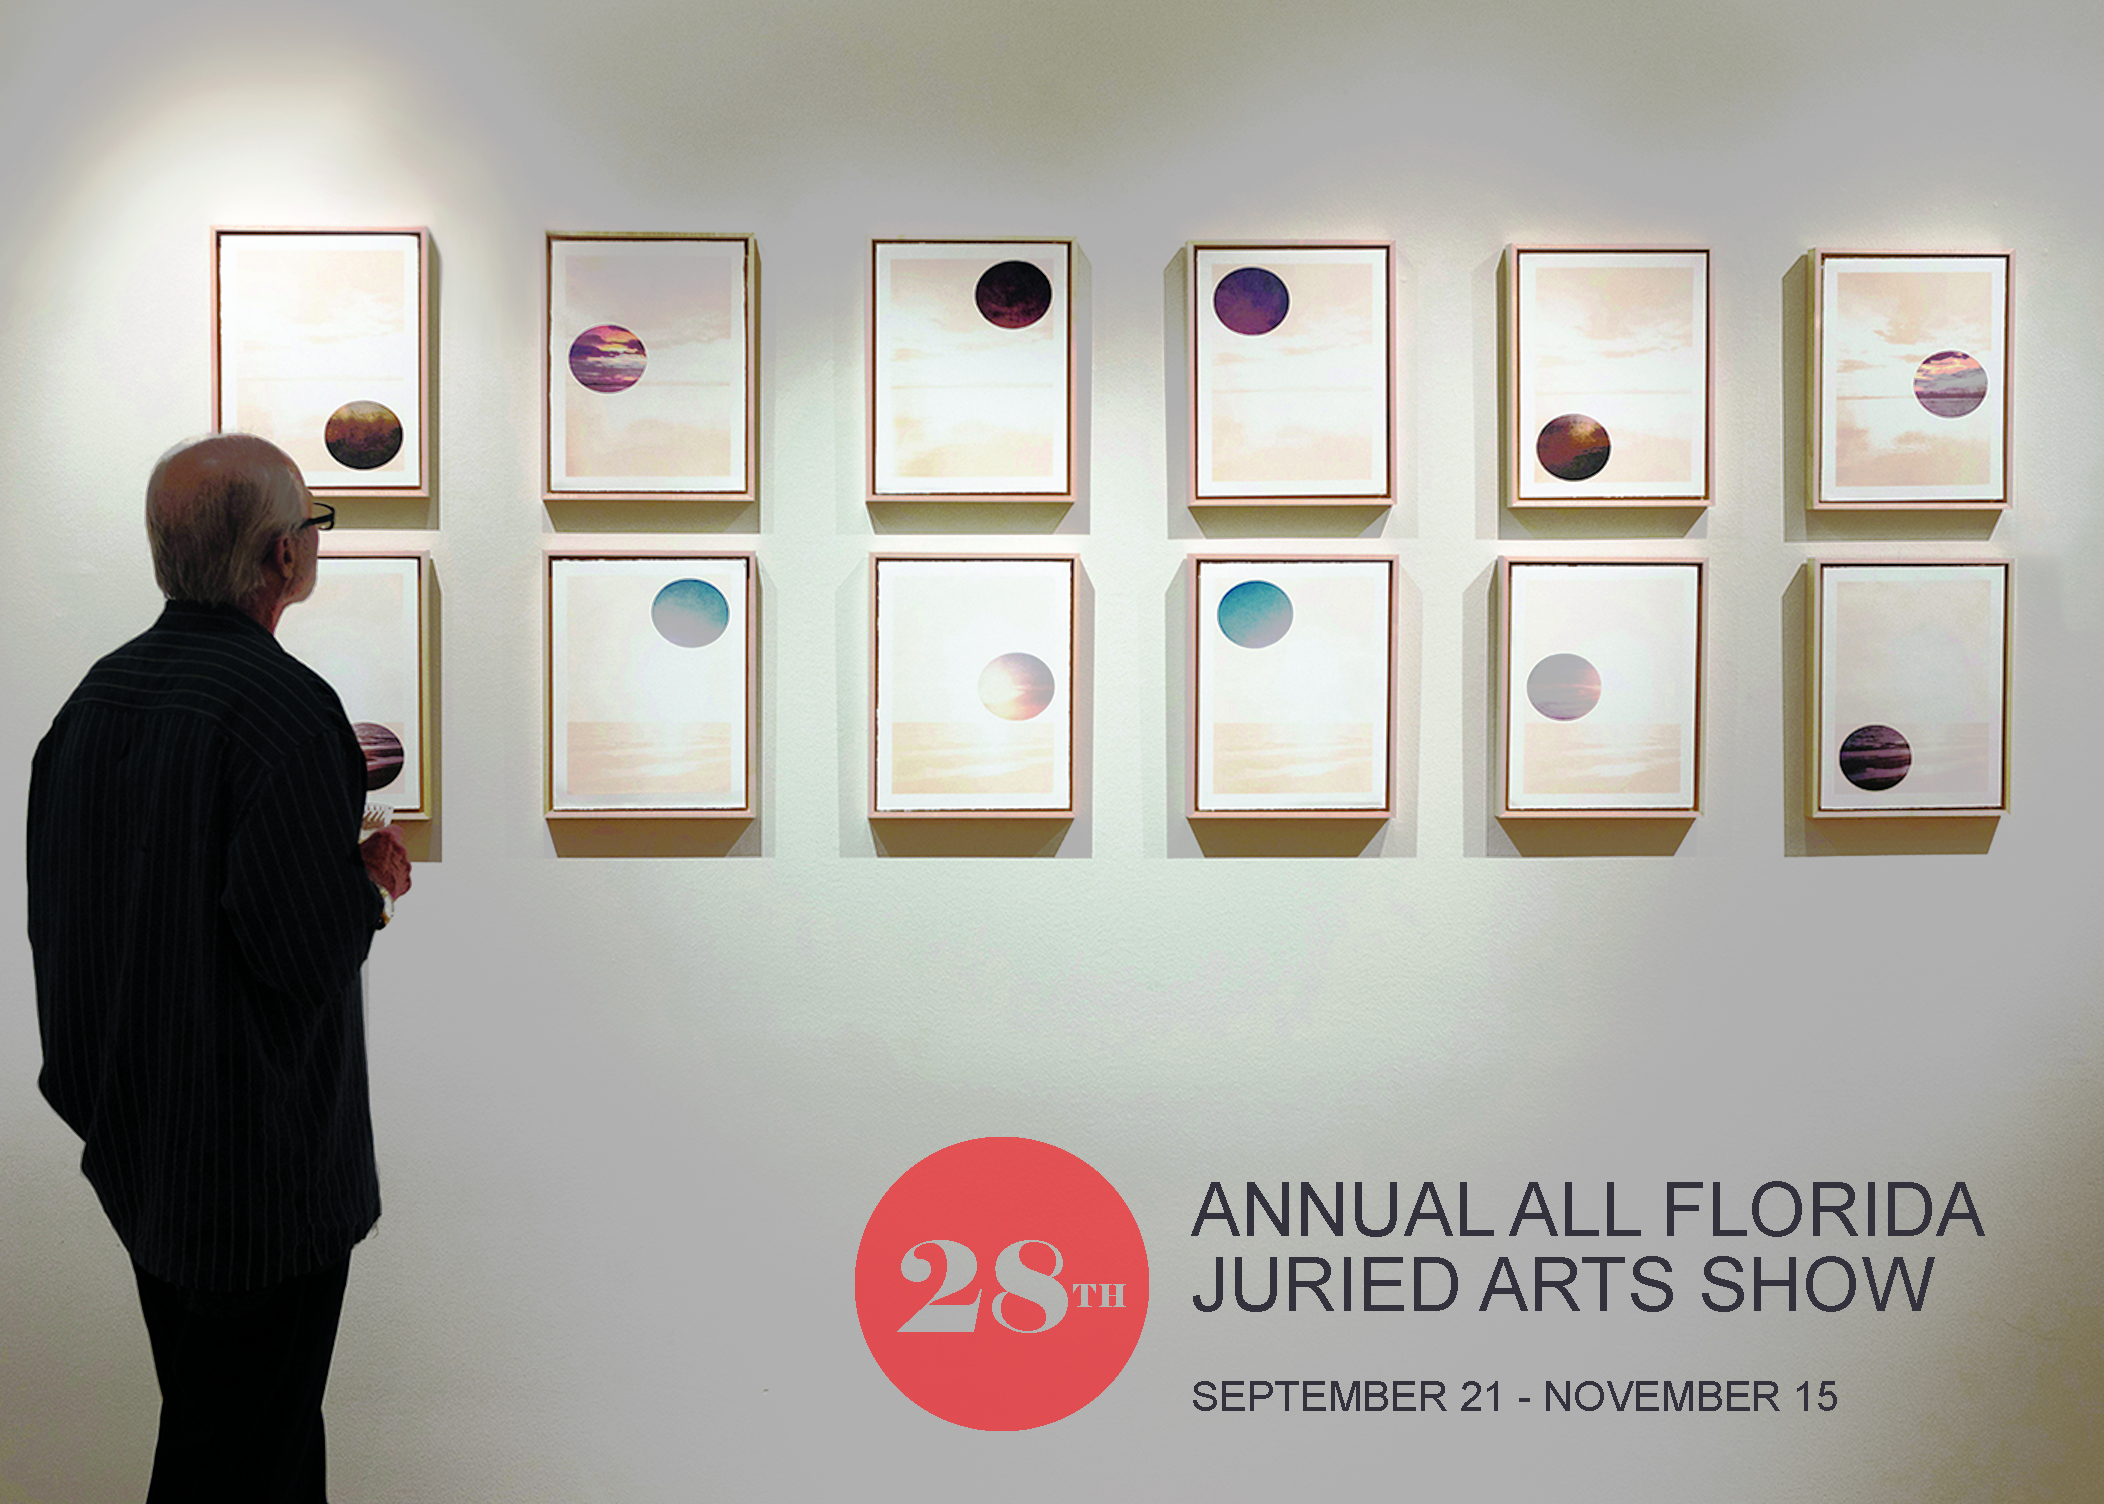 28th Annual All Florida Juried Arts Show